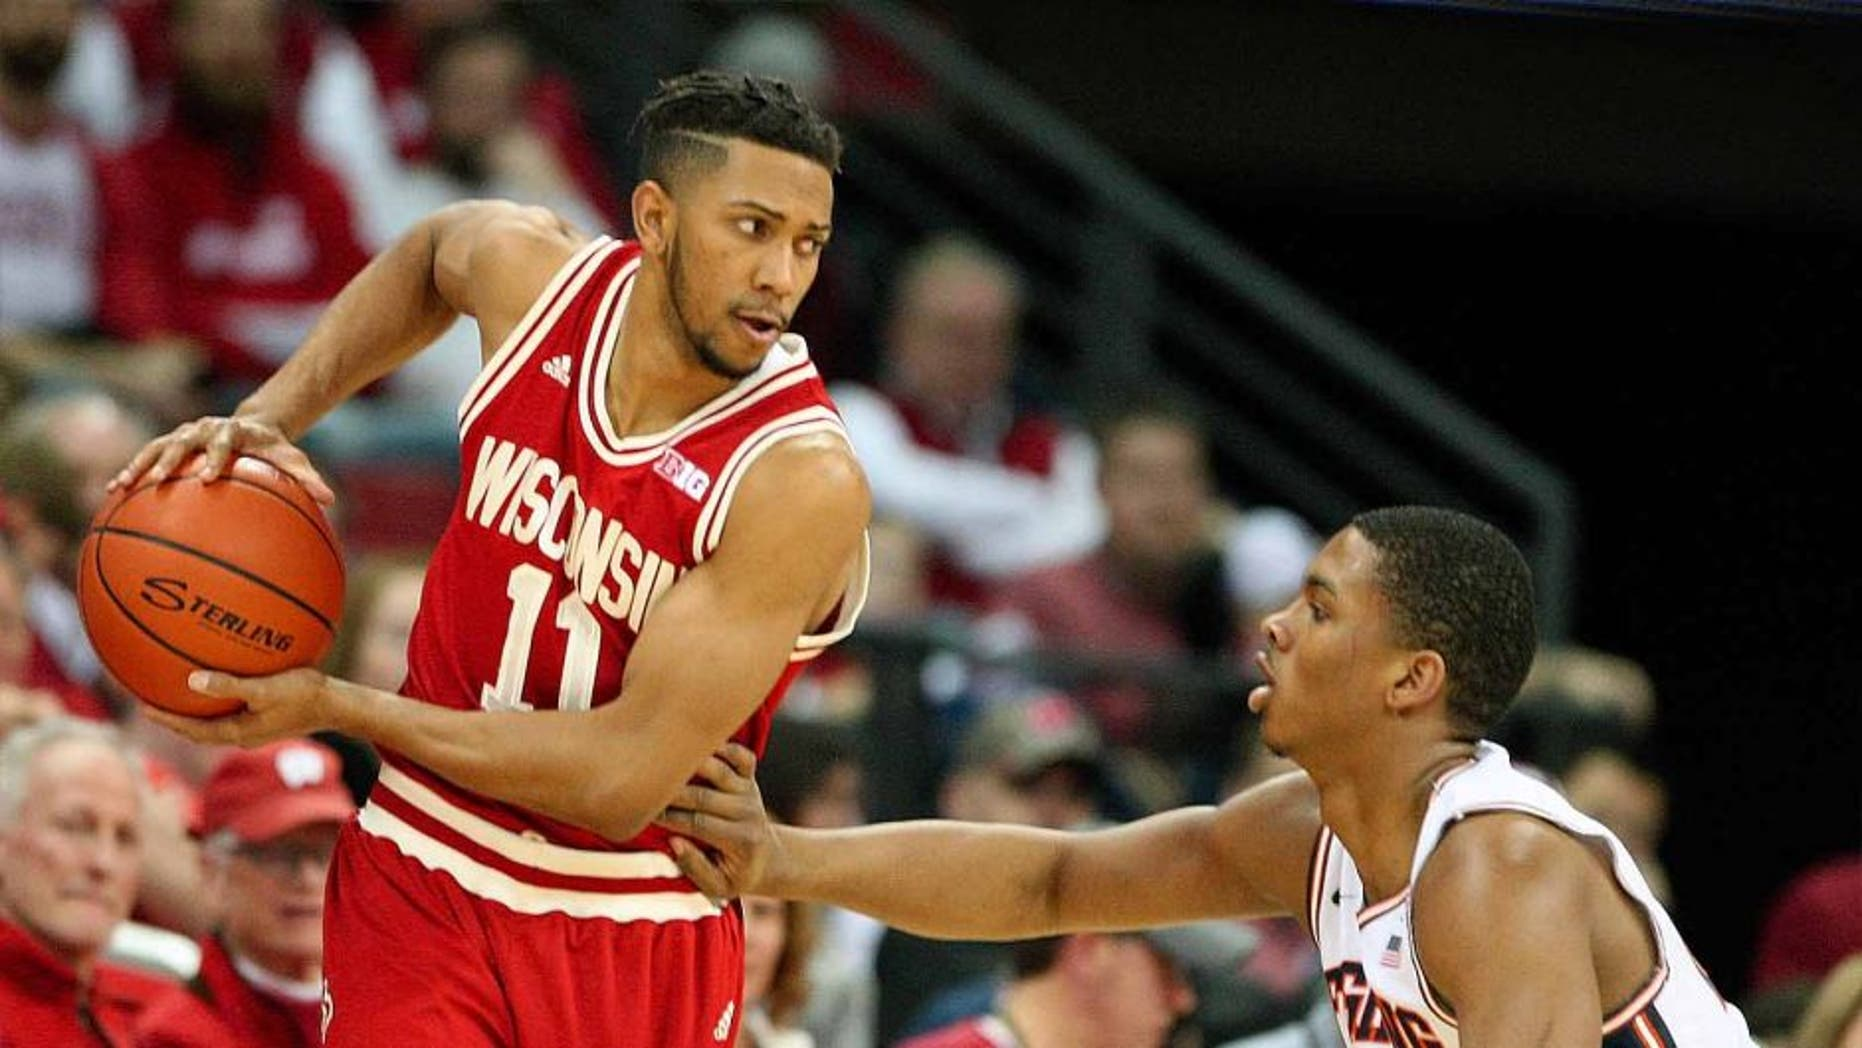 Wisconsin Badgers guard Jordan Hill looks to pass as Illinois guard Malcolm Hill defends during the first half at the Kohl Center in Madison, Wis., on Sunday, Feb. 21, 2016.